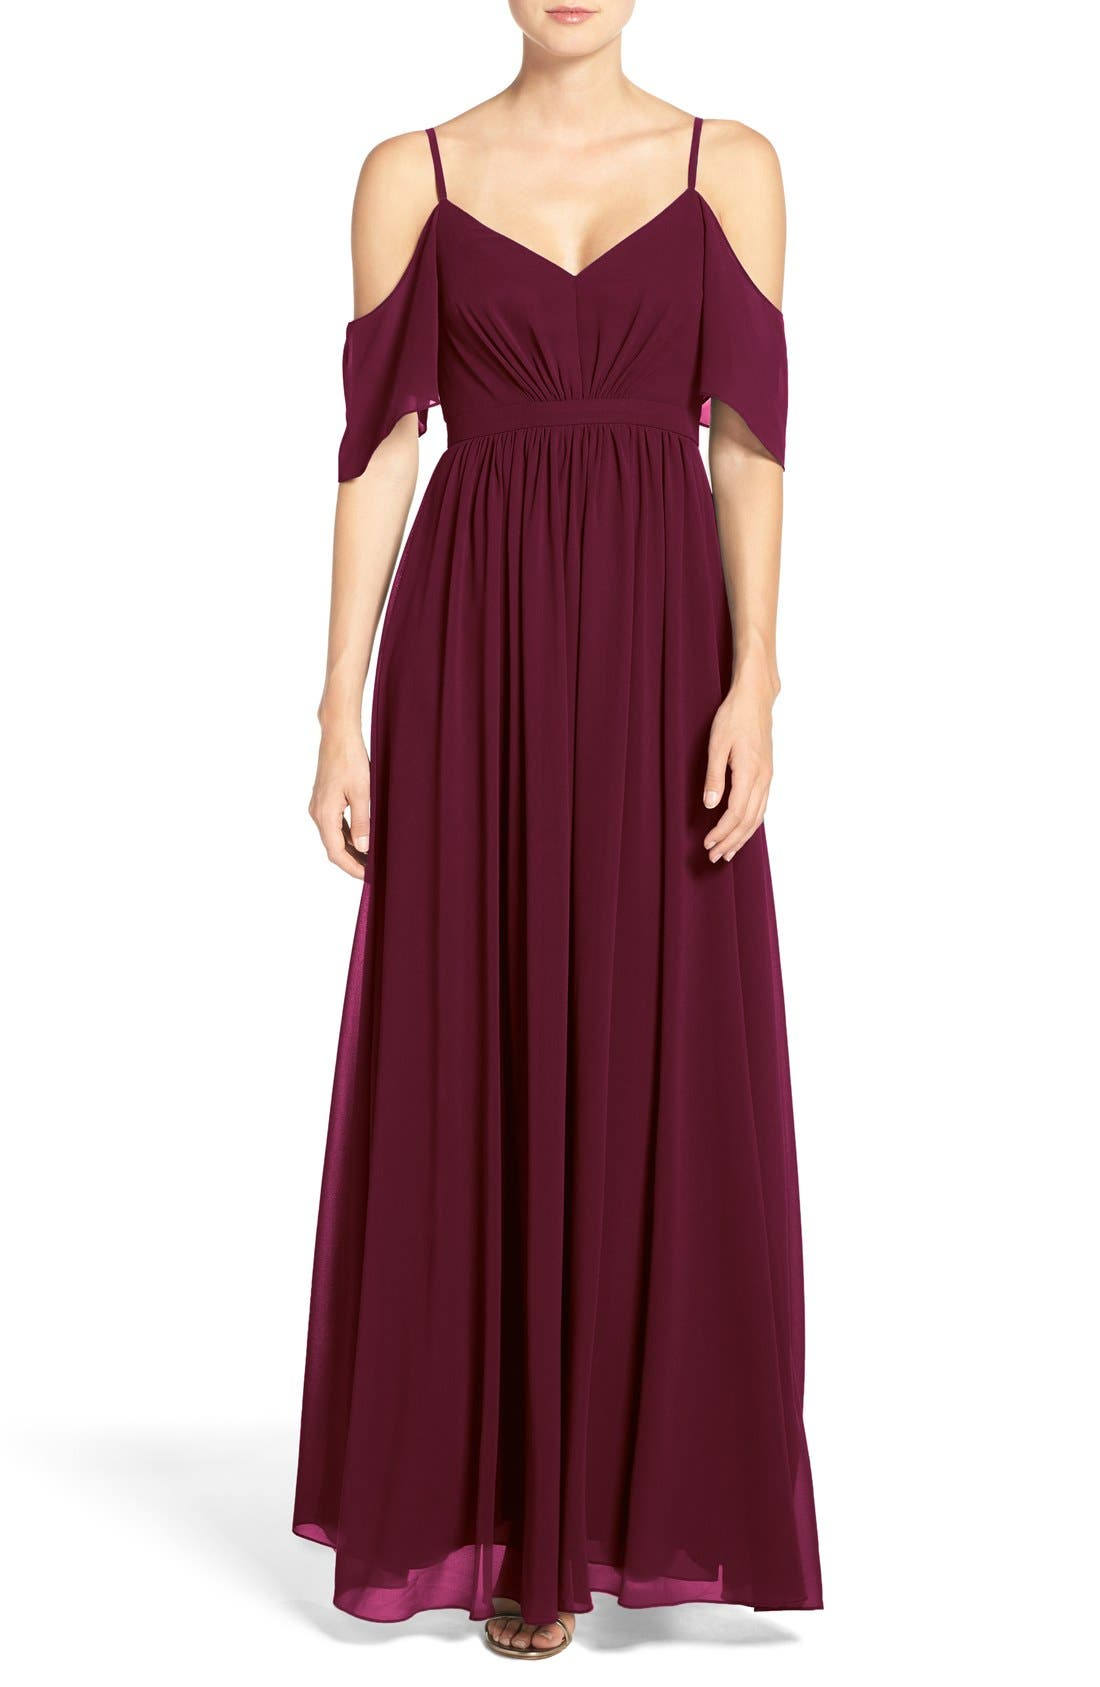 Alternate Image 1 Selected - Lulu's Off the Shoulder Chiffon Gown